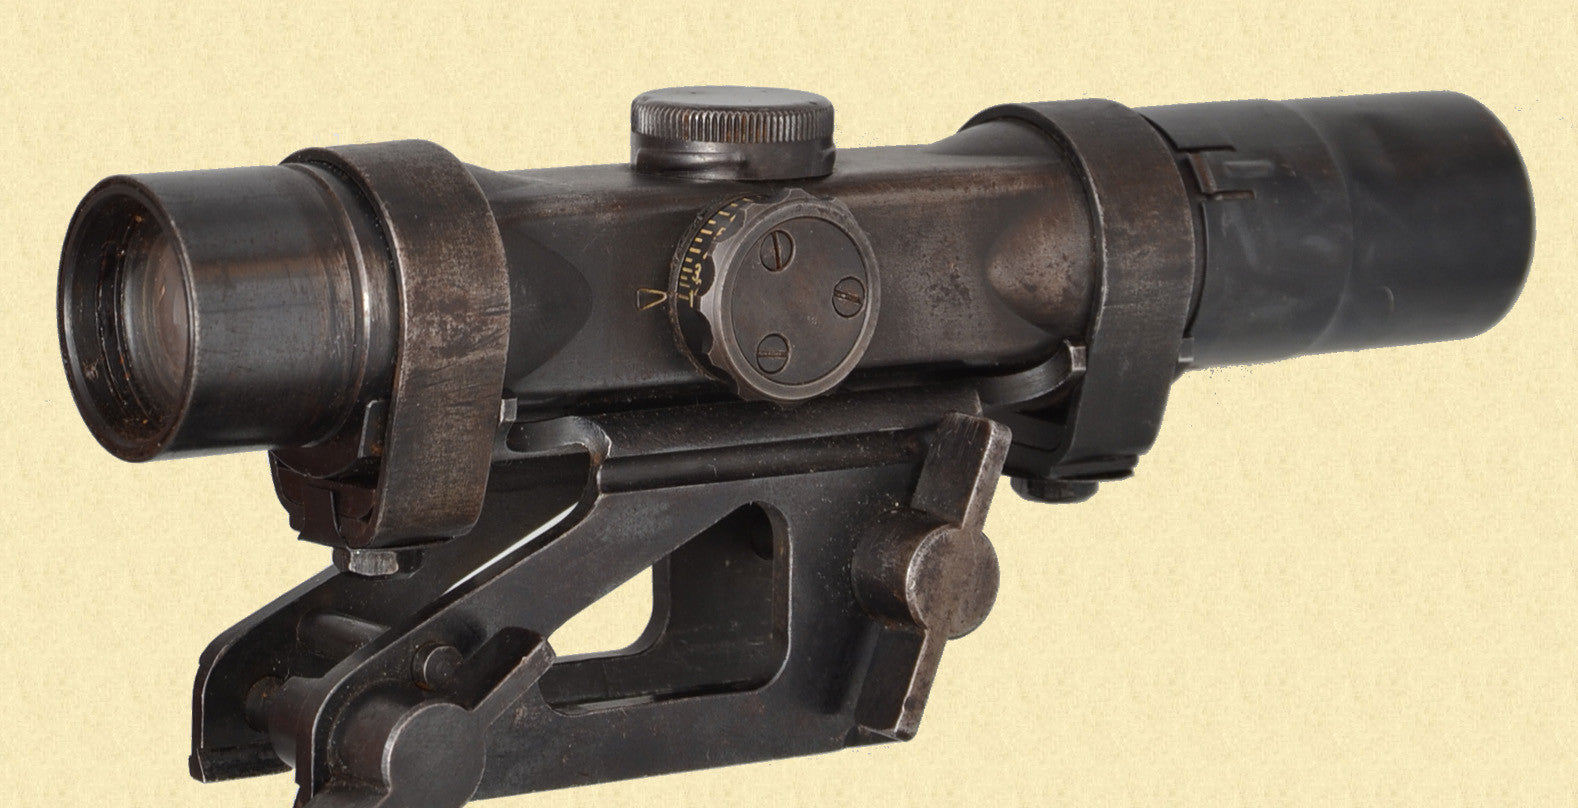 German Ww2 Zf4 Fg42 Rifle Scope Simpson Ltd